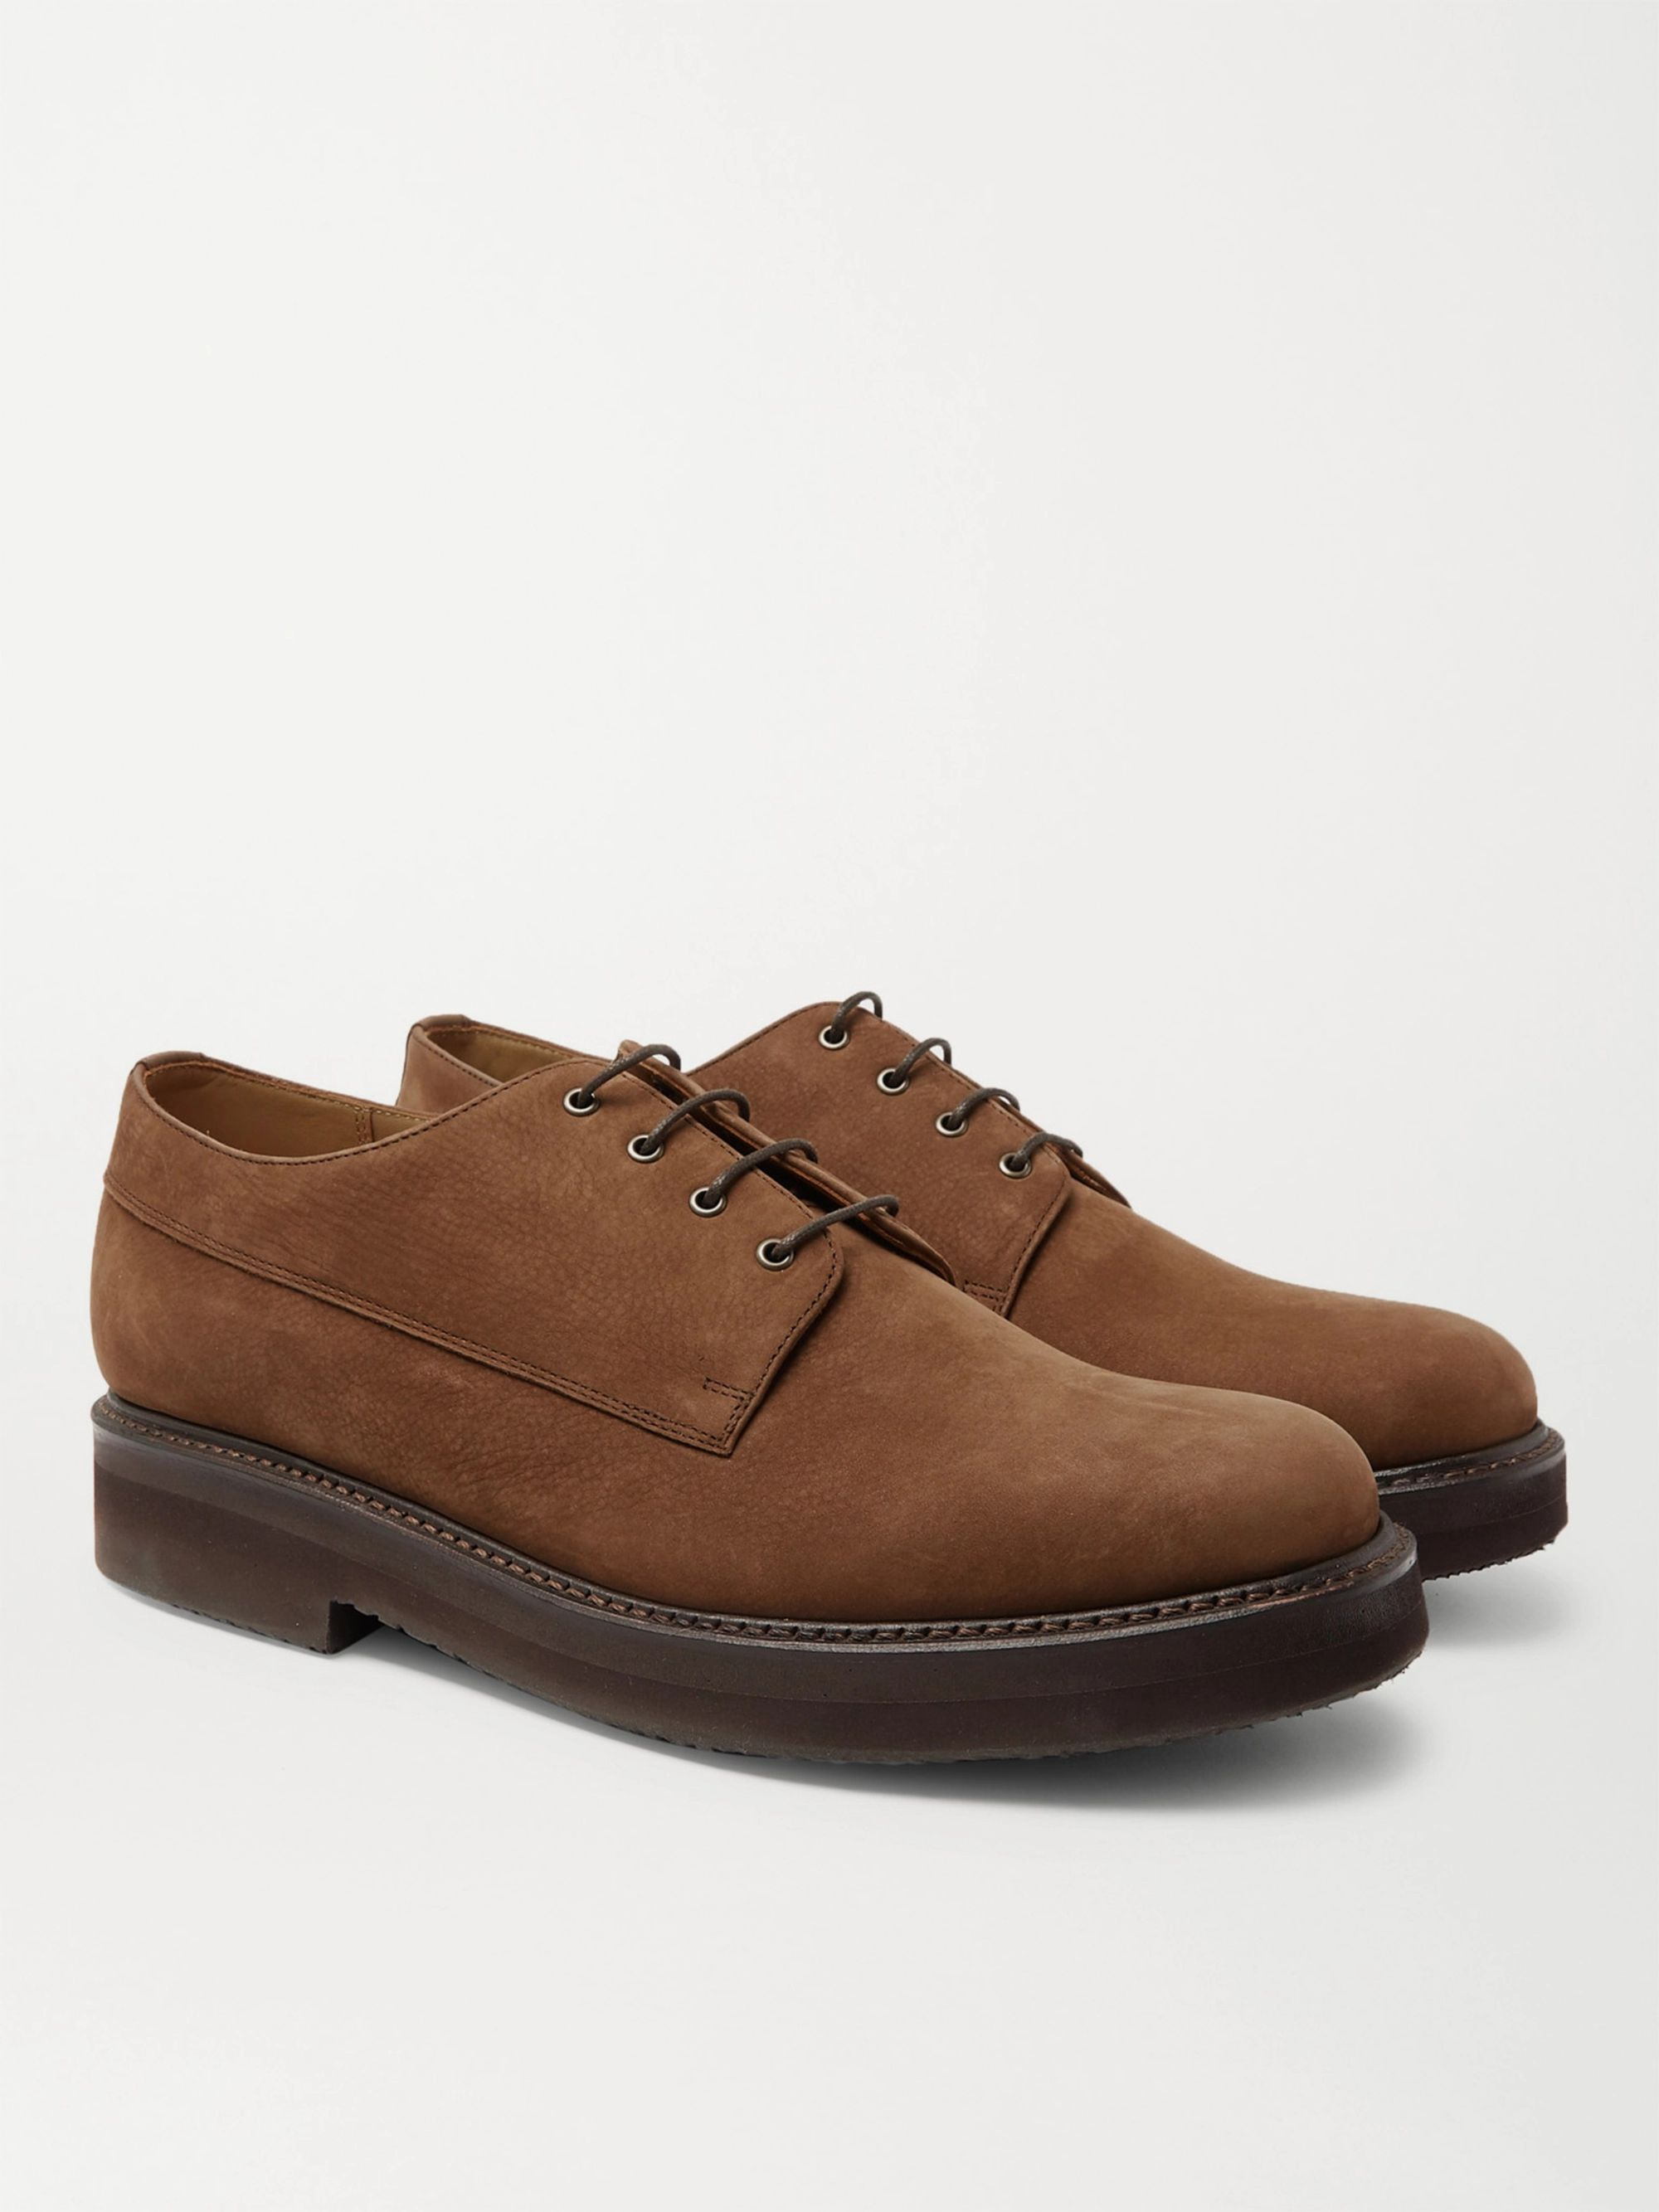 GRENSON Hurley Nubuck Derby Shoes